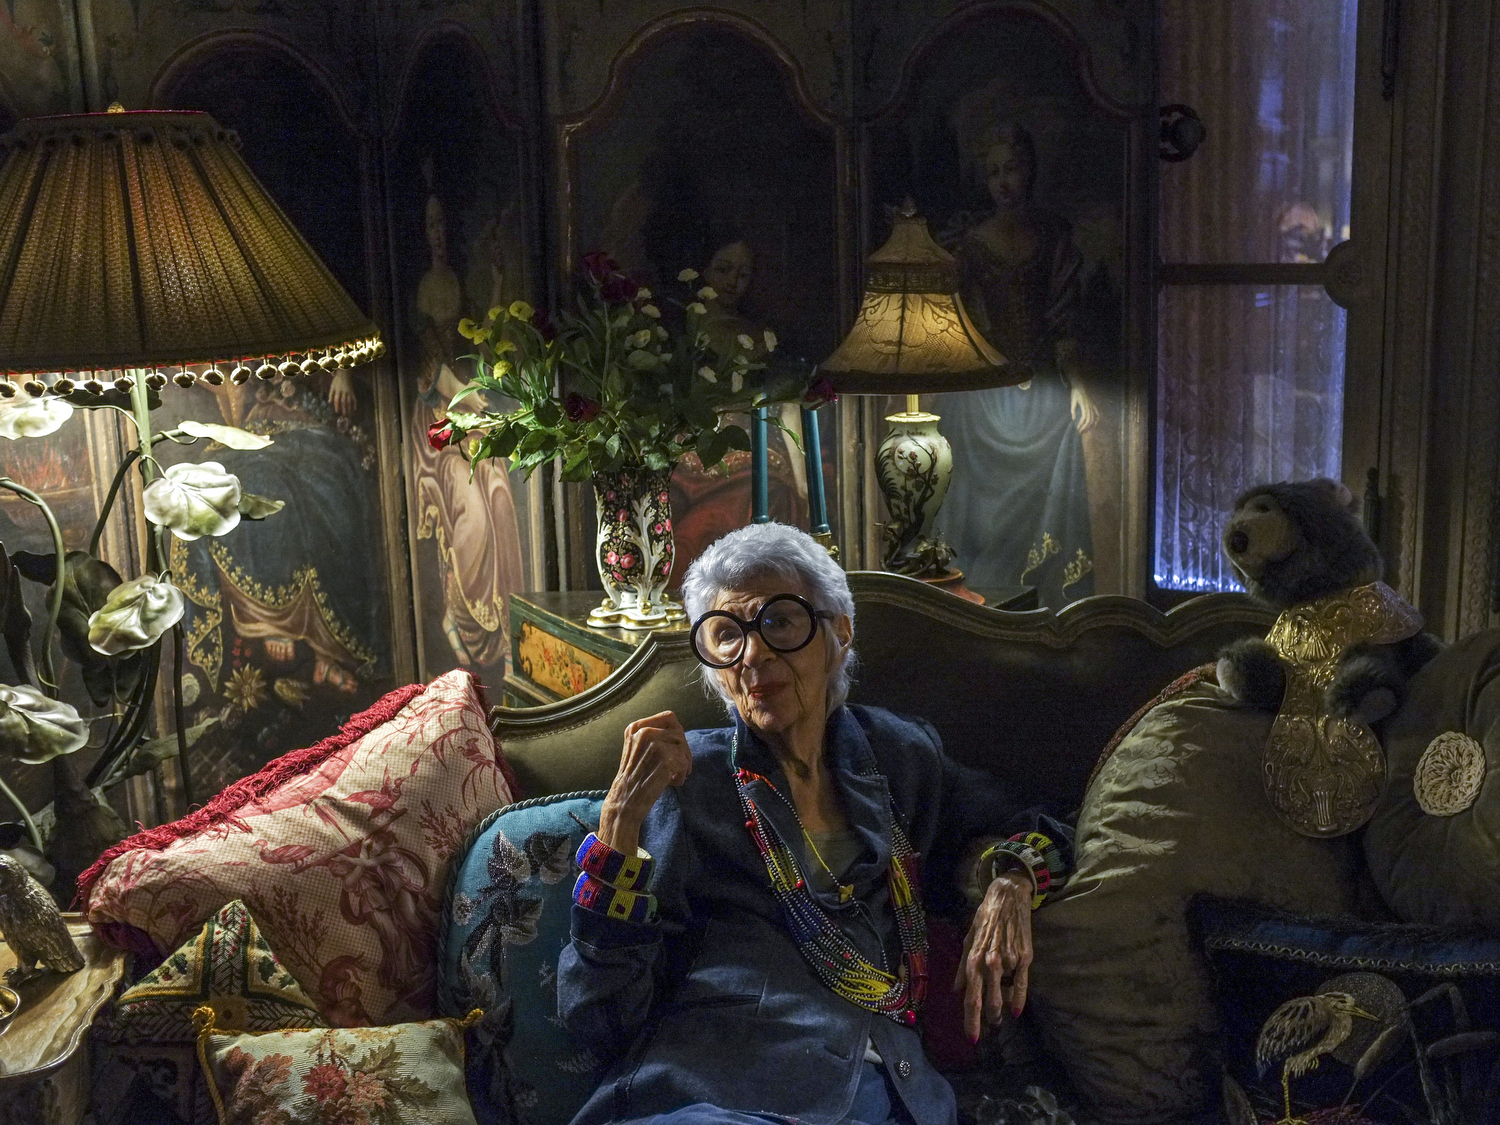 USA.  New York, New York.  2012.  The fashion designer and icon Iris Apfel photographed at her Upper East Side Manhattan home.